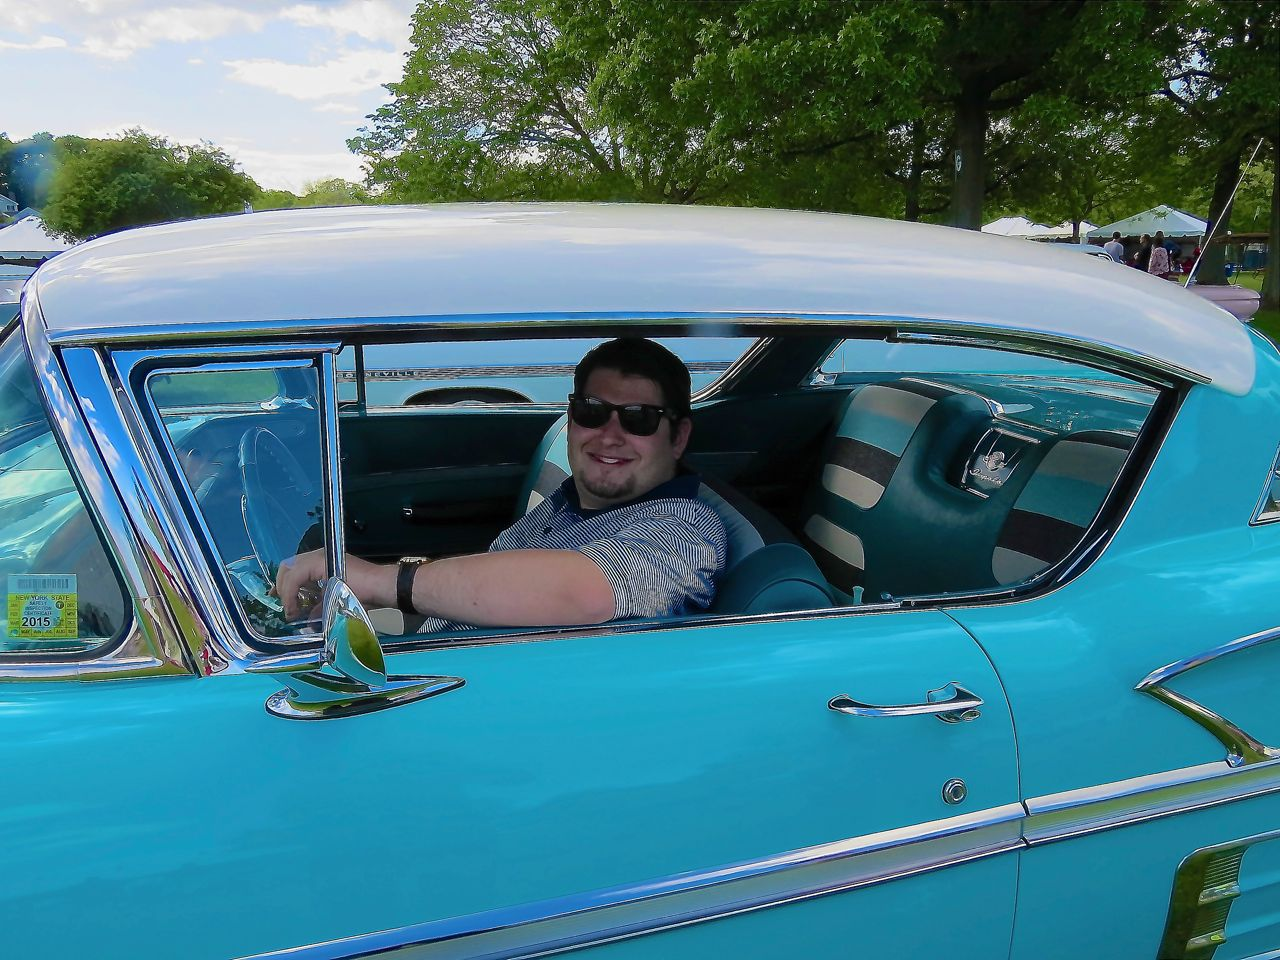 Al sitting in the Impala